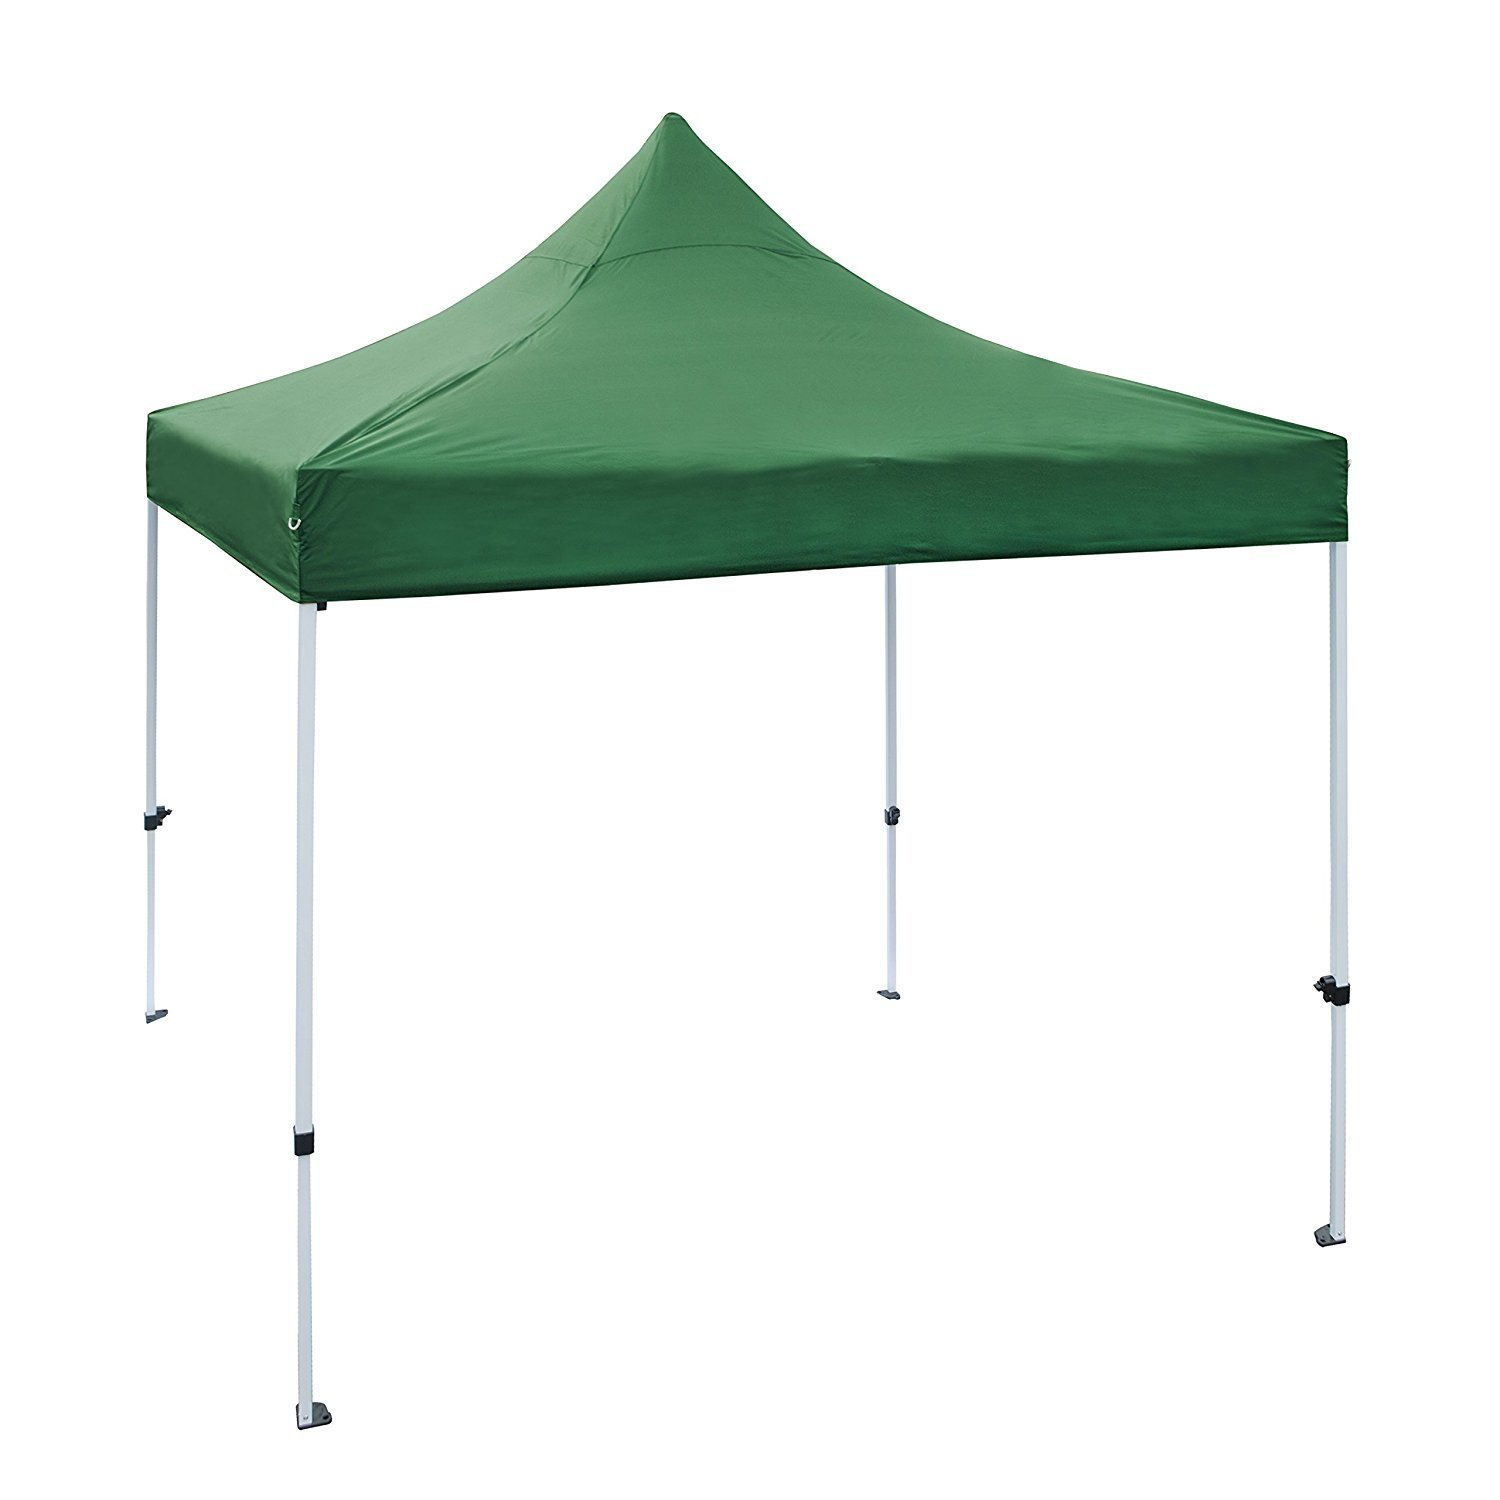 Aleko 10 X 10 ft Outdoor Party Waterproof Green Gazebo Te...